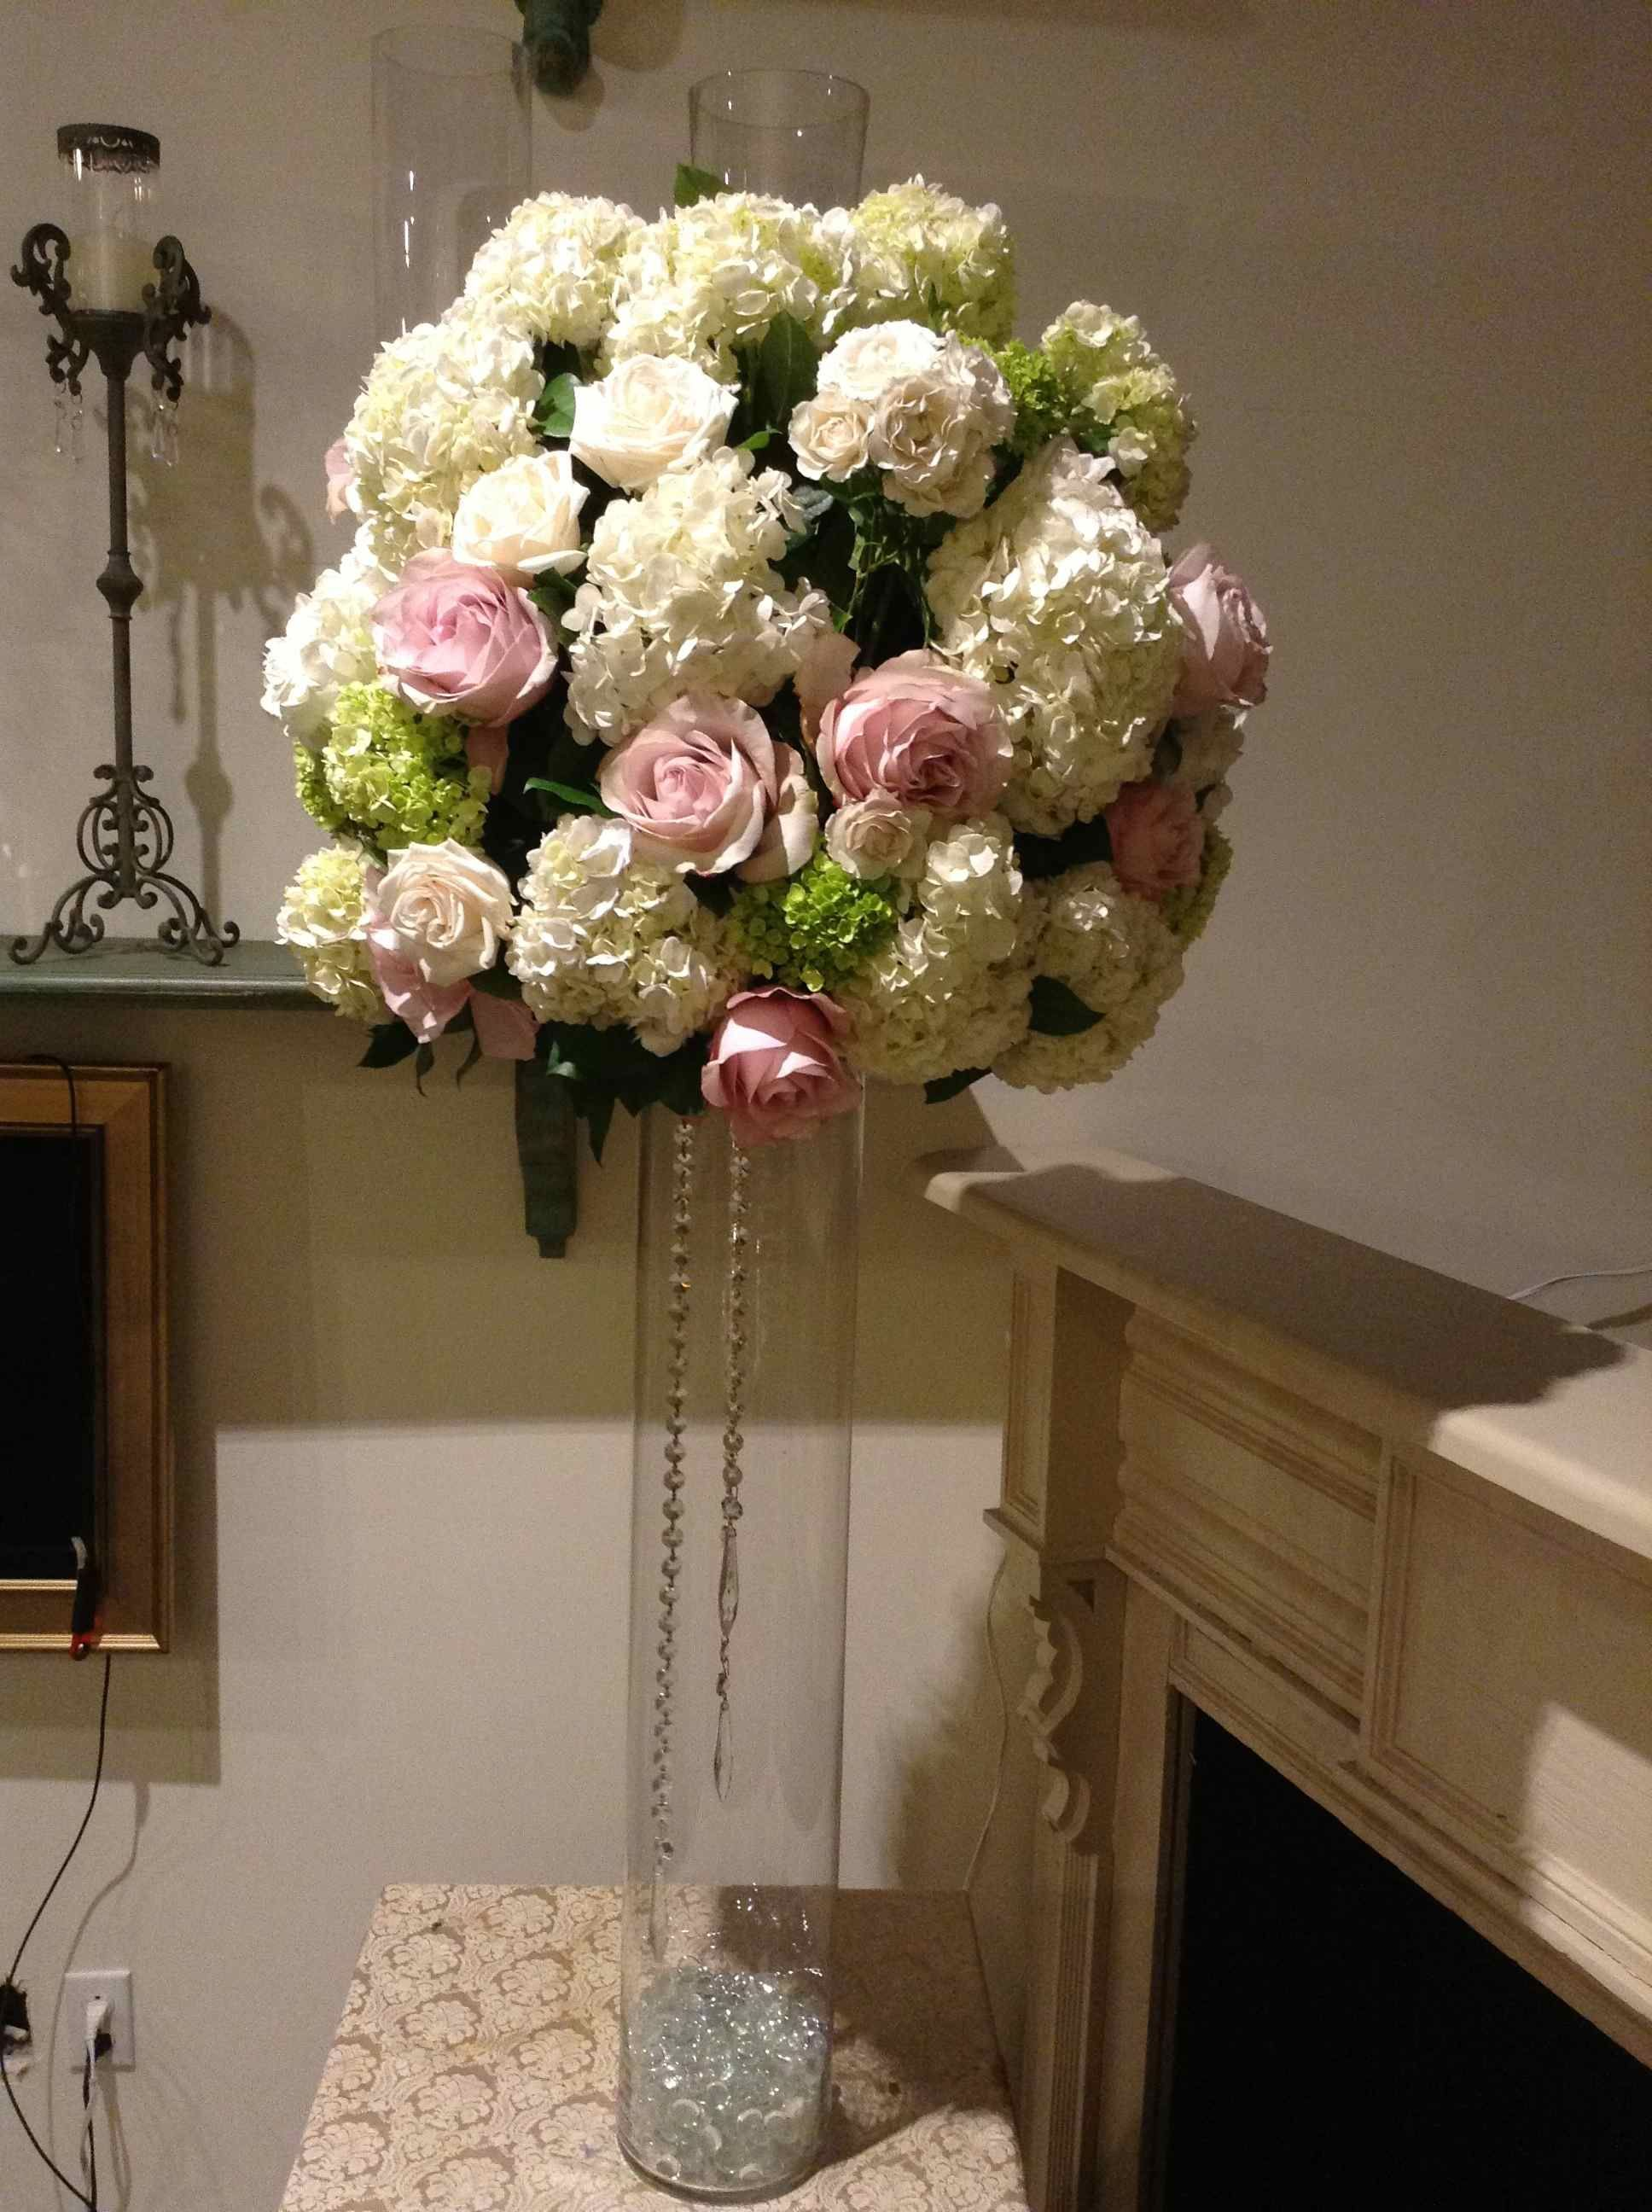 White hydrangea with Secret Garden roses and baby green hydrangea.